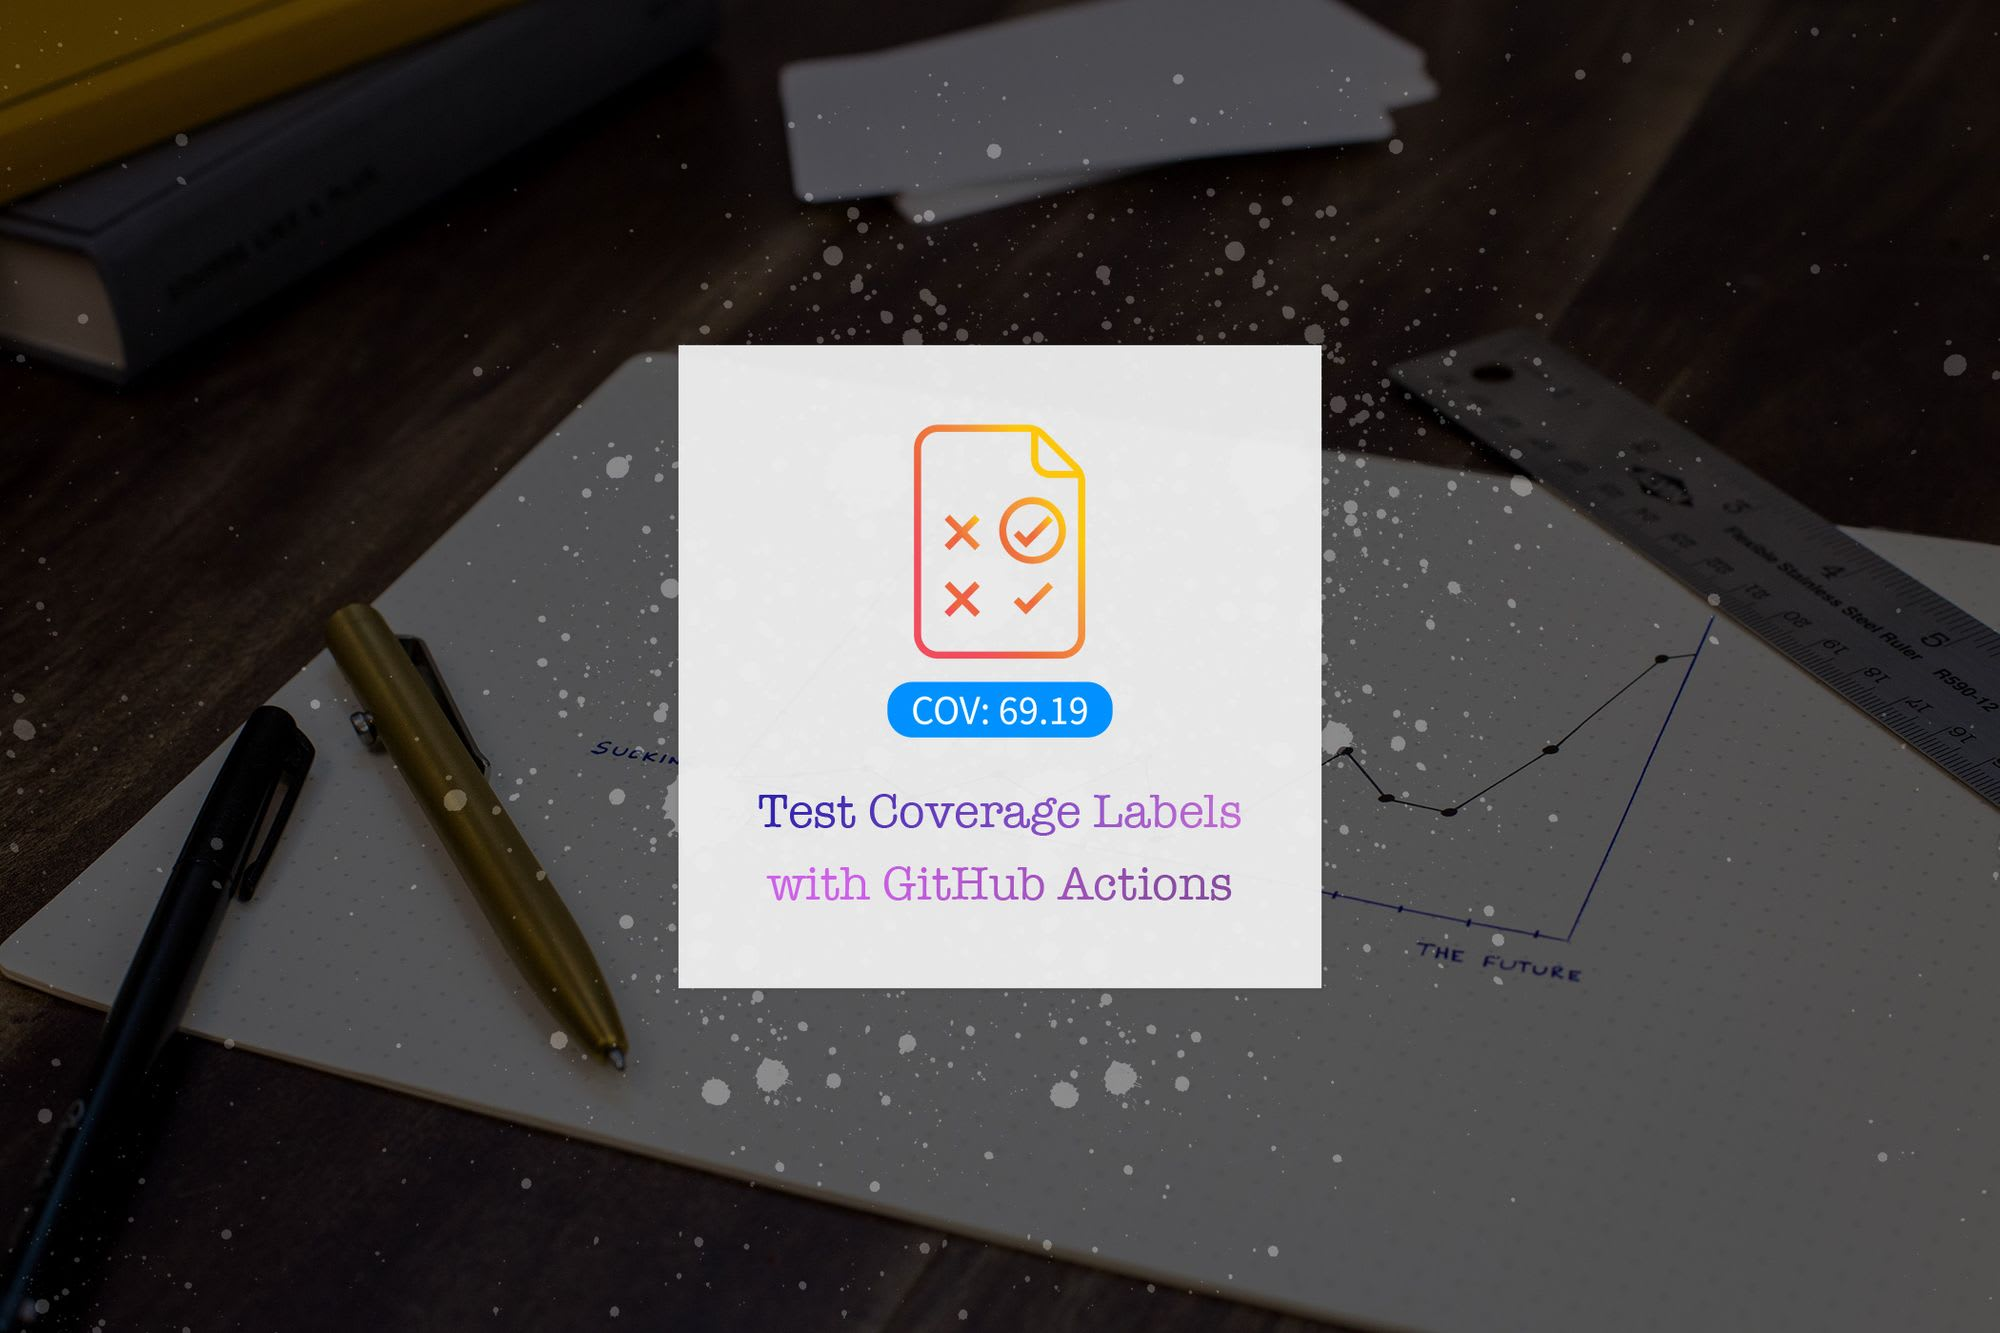 Add Test Coverage Label with Github Actions